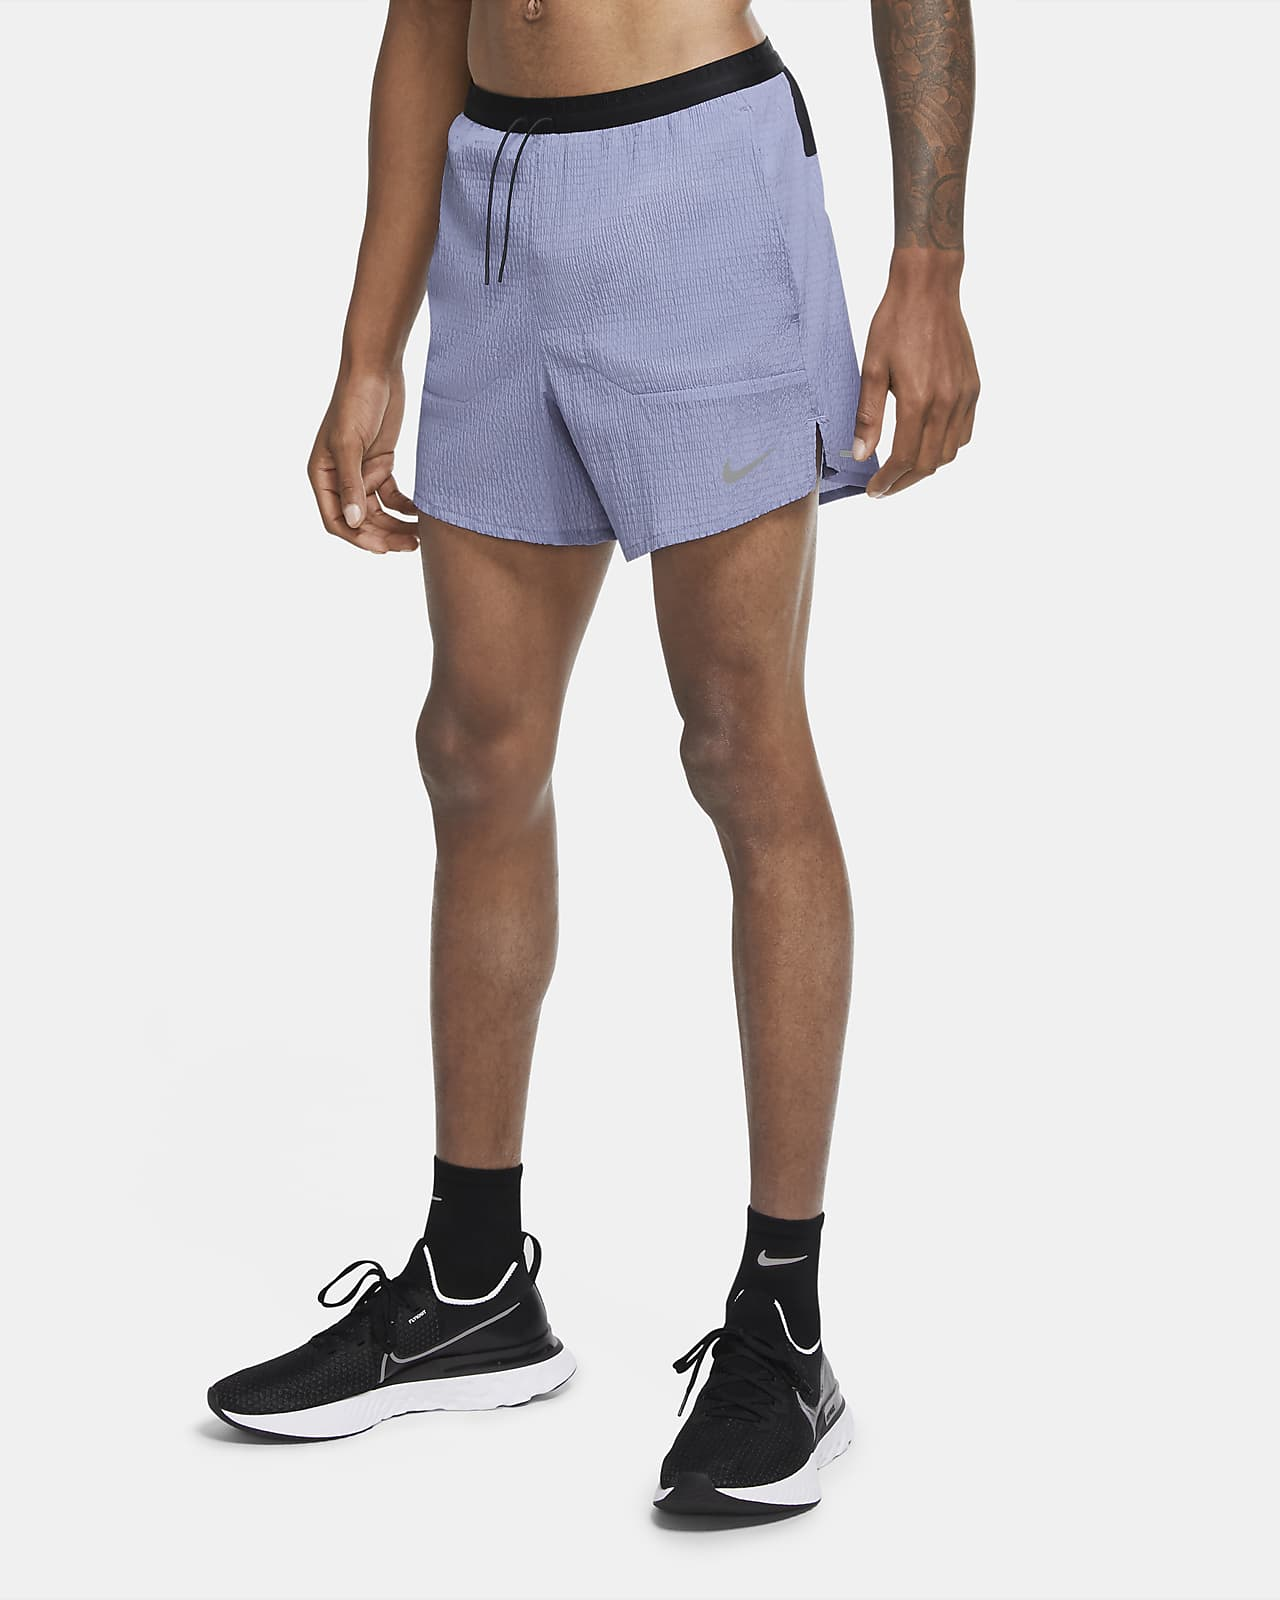 Shorts de running para hombre Nike Flex Stride Run Division